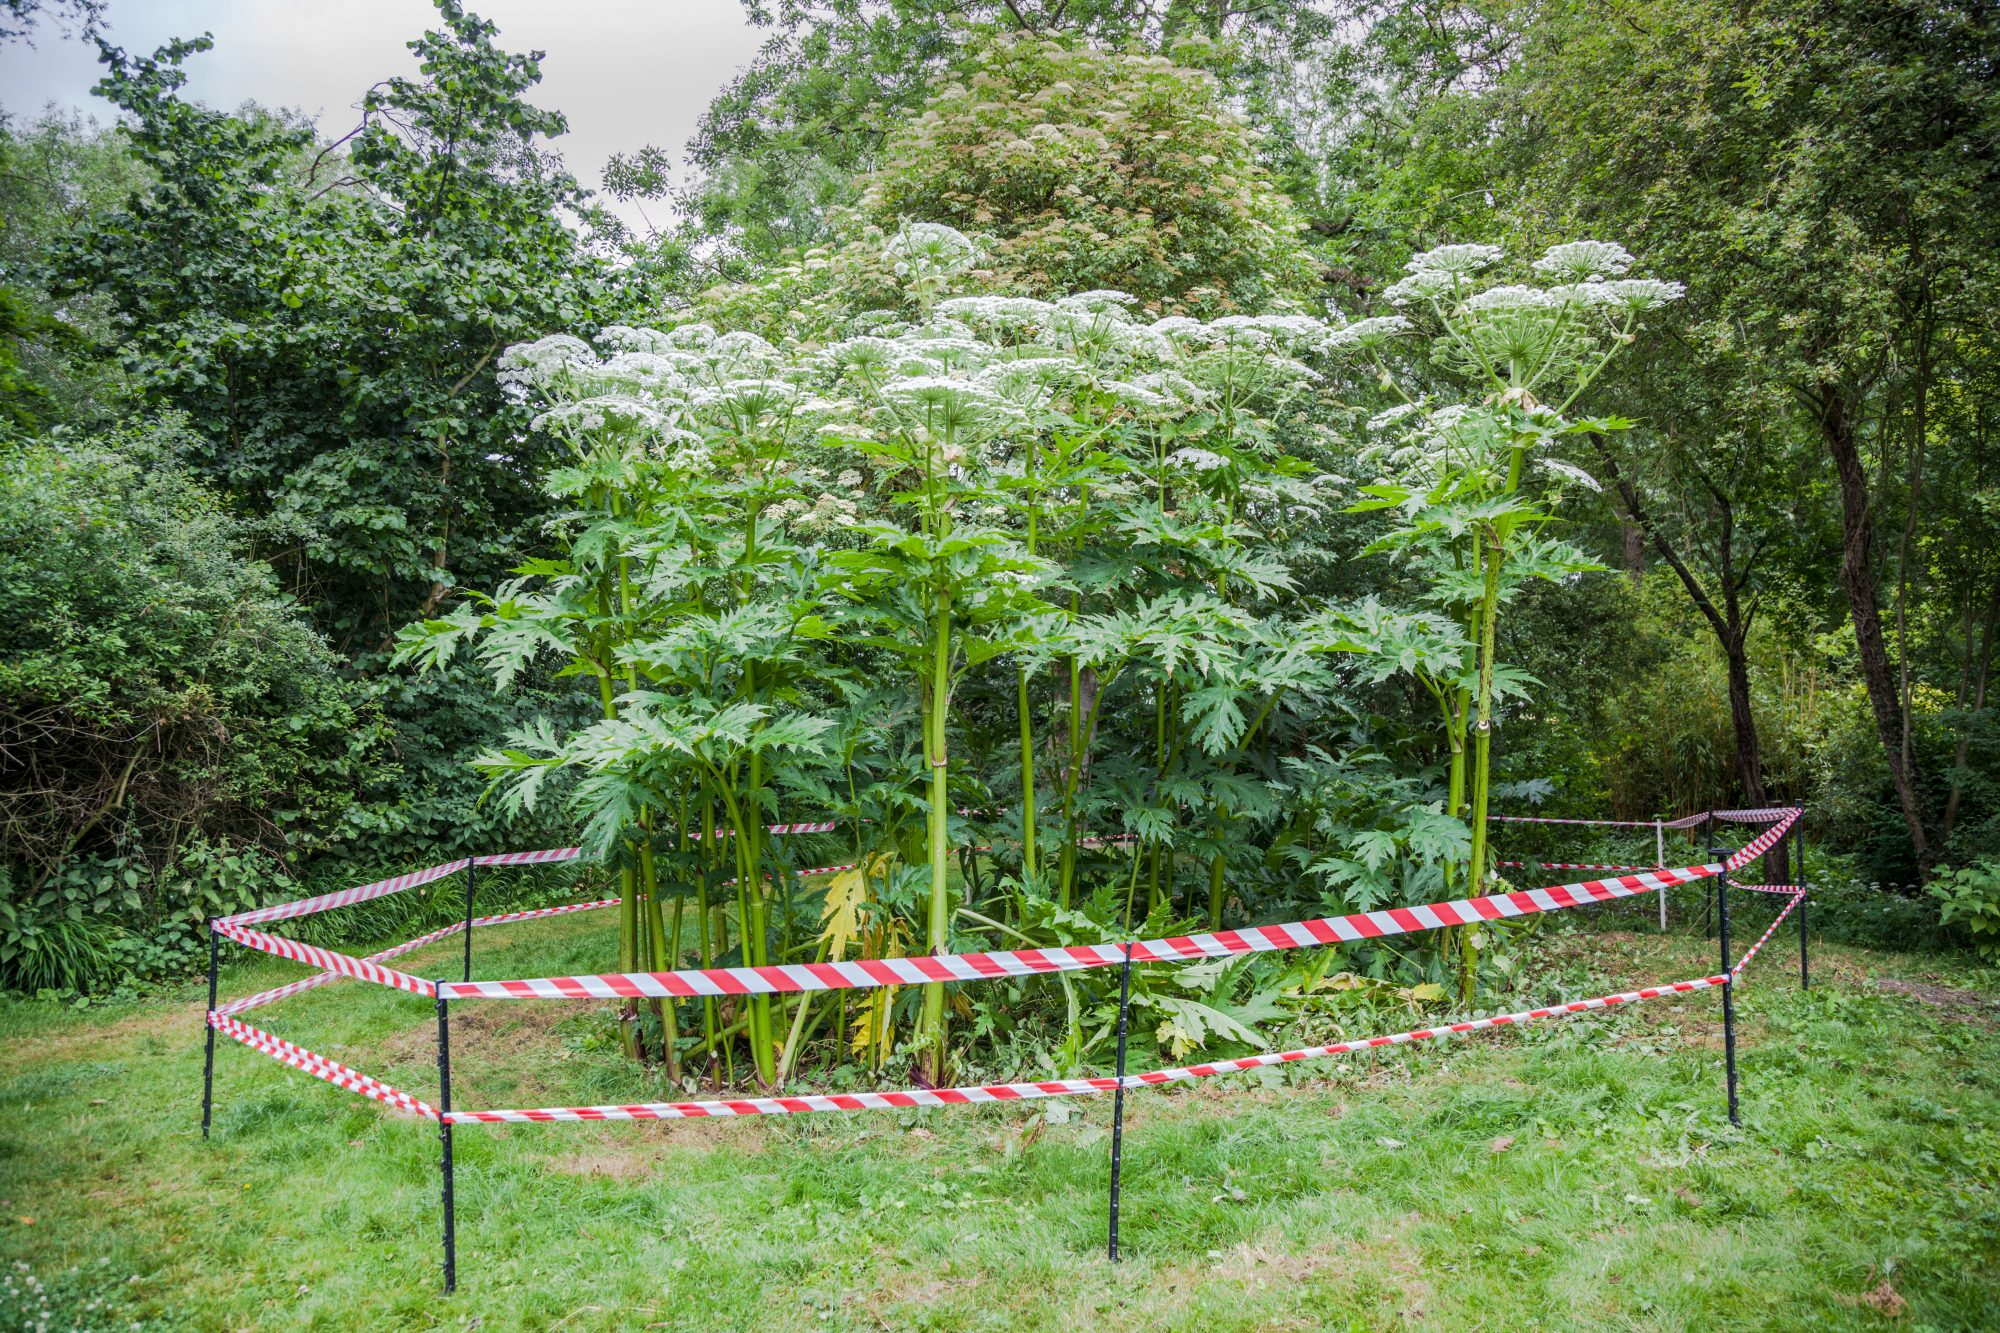 Giant Hogweed Roped Off With Caution Tape